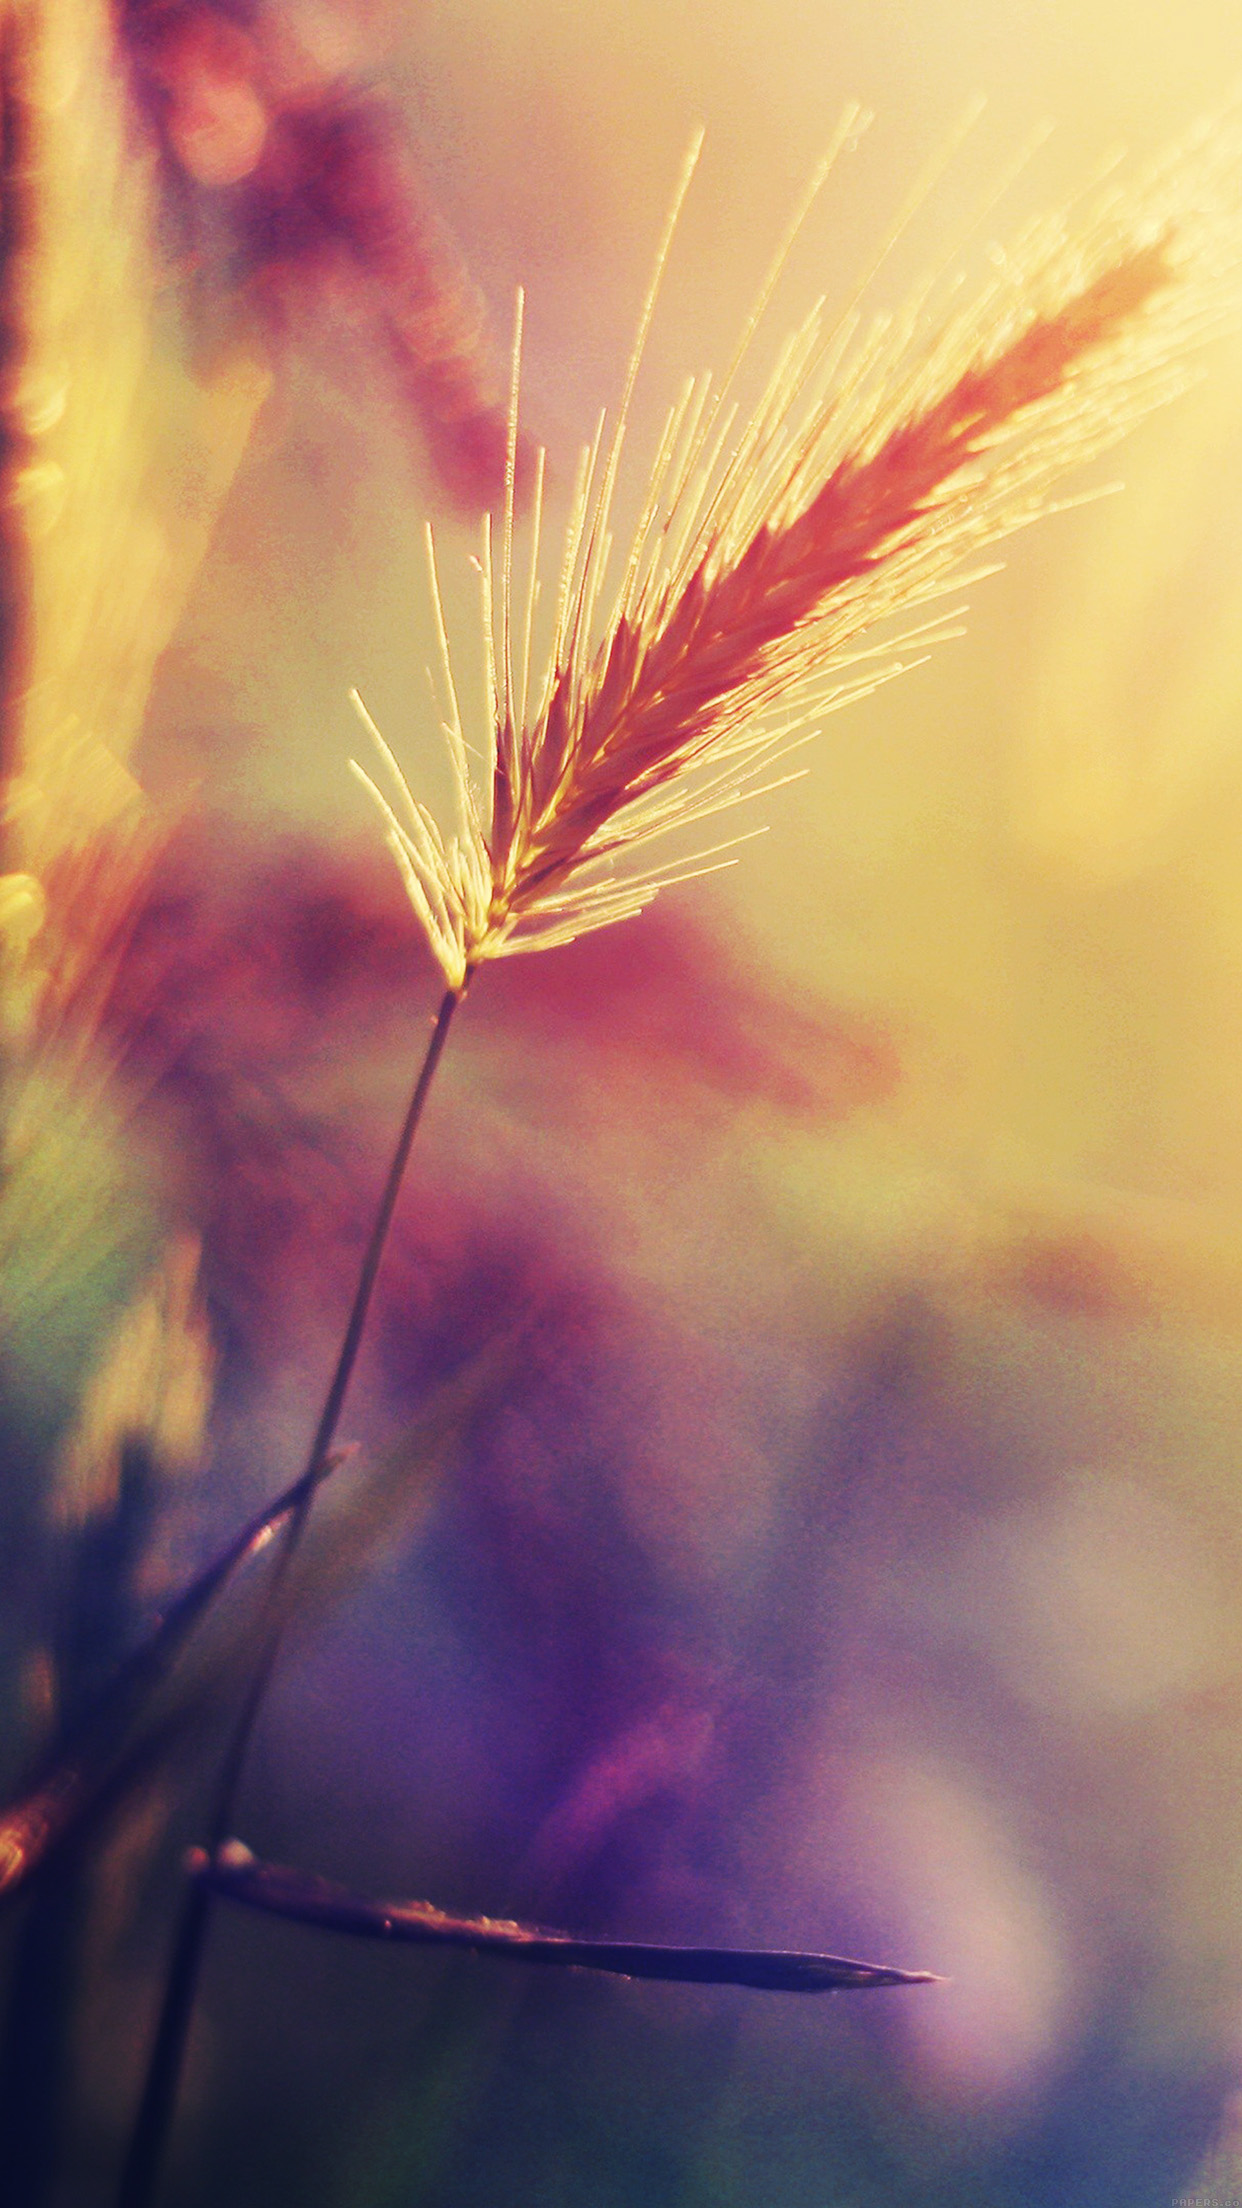 Sunrise Wallpaper Iphone 6 Papers Co Iphone Wallpaper Mm19 Sunset Reed Flower